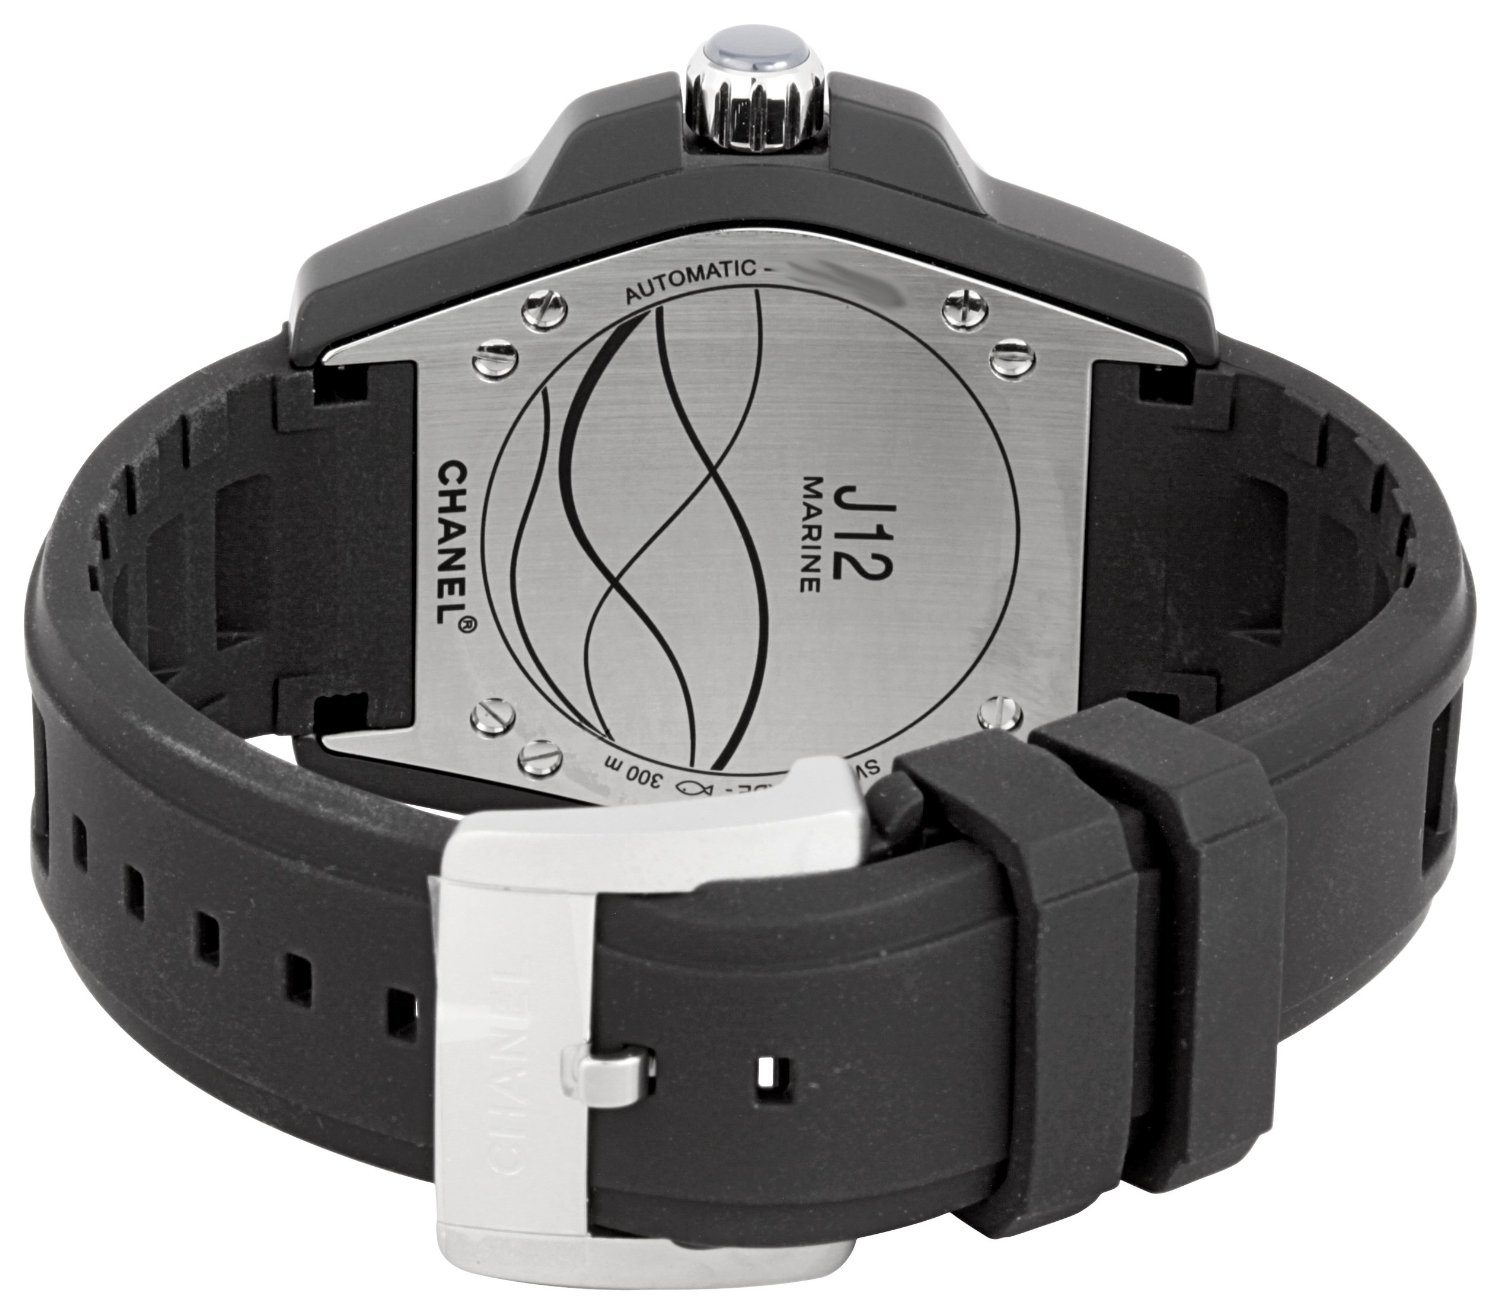 chanel men s h2559 j12 black rubber strap watch bracelet watch chanel launched the j12 watch range in 1999 to major success the j12 watch collection contains chanel s first unisex watch and has a unique style that has